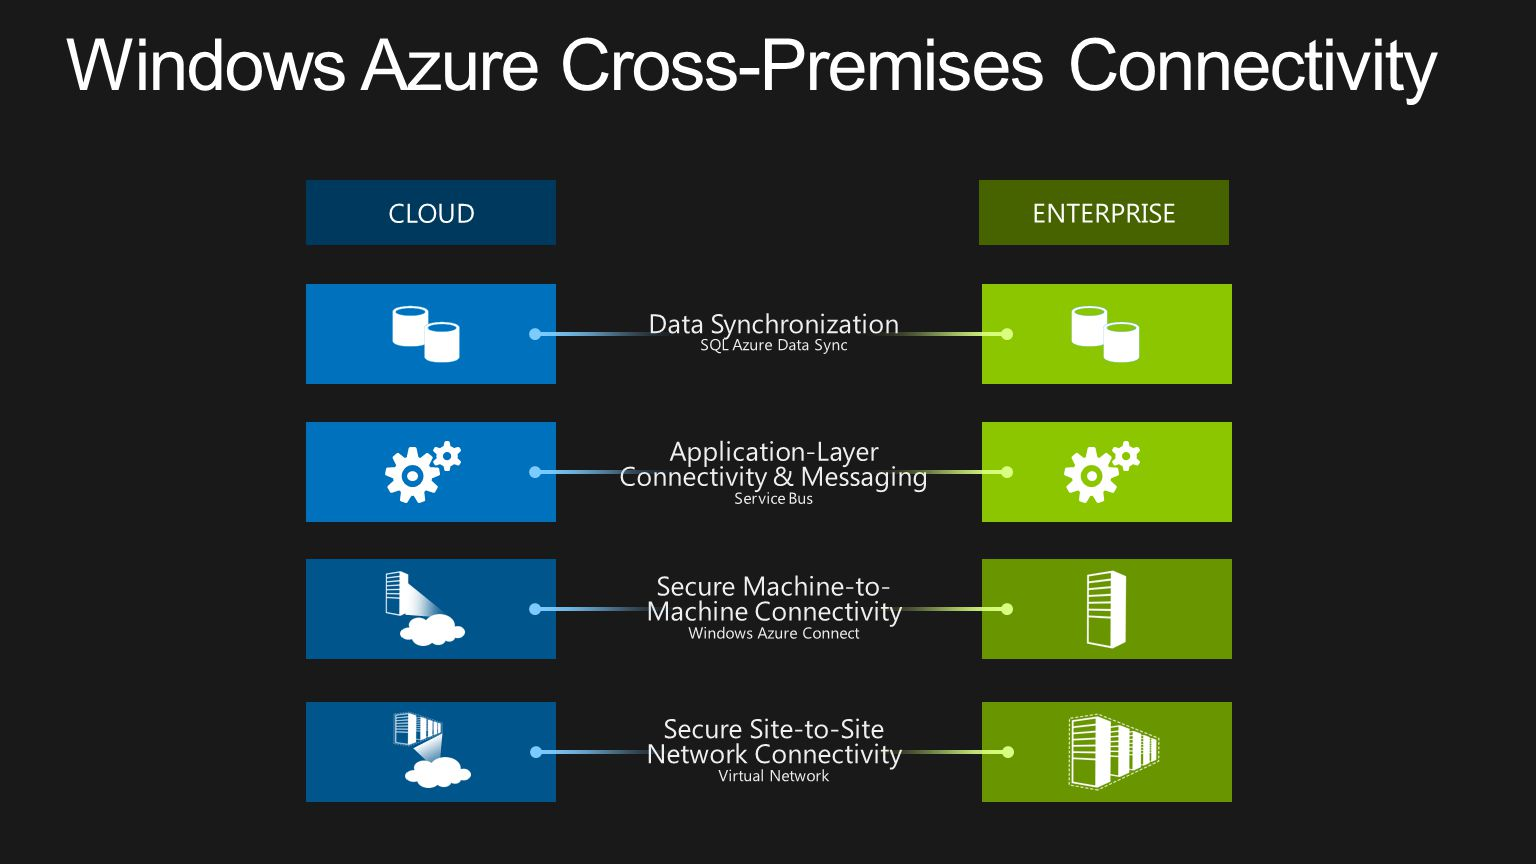 Windows Azure Cross-Premises Connectivity